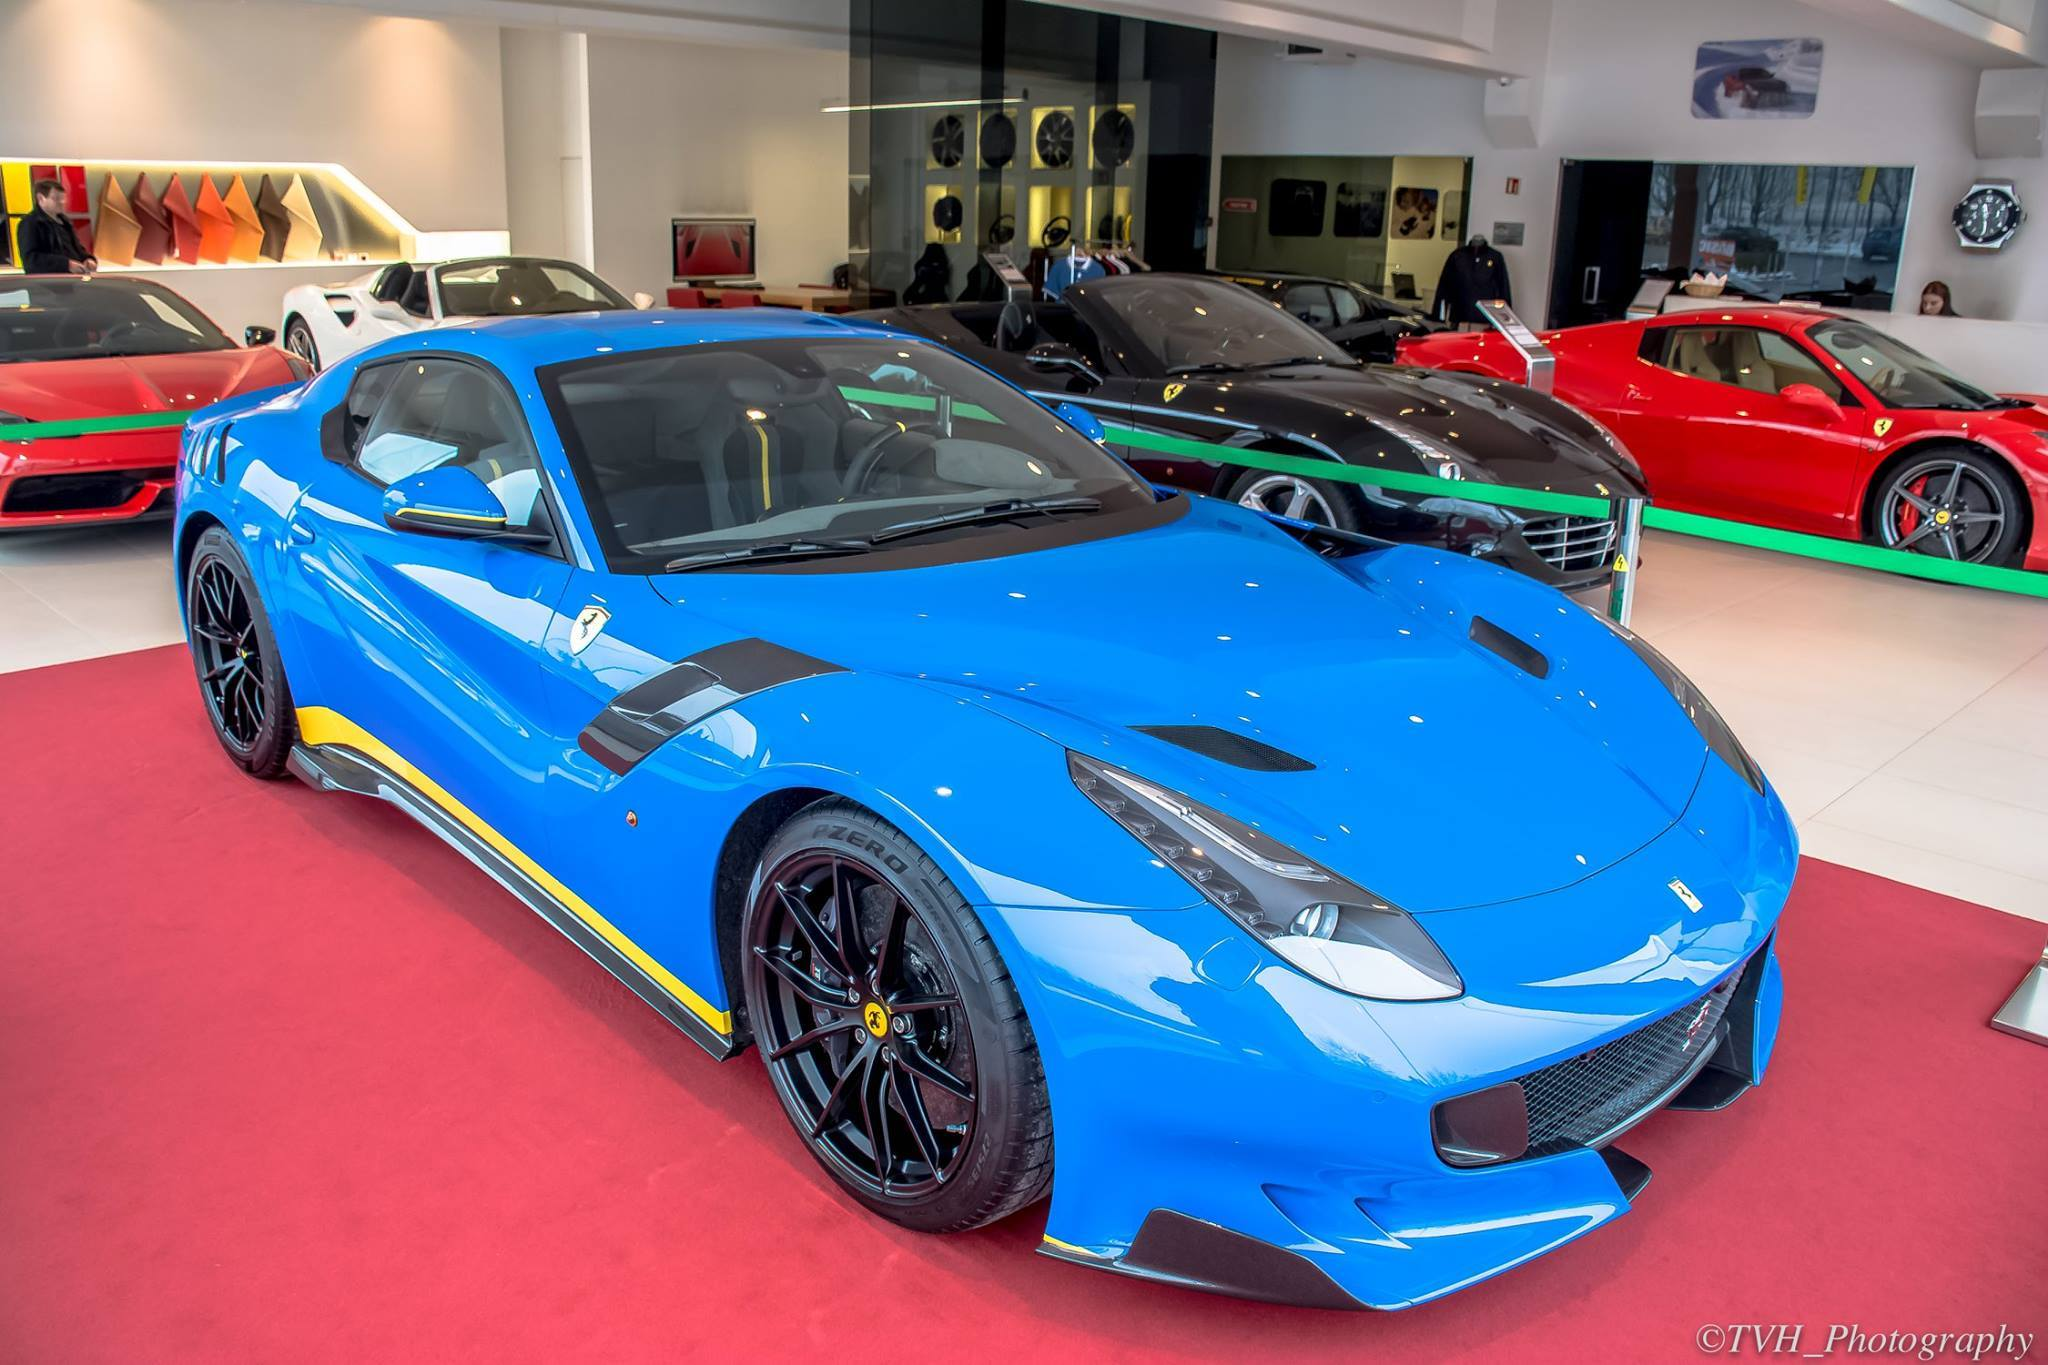 Blue Ferrari F12 Tdf Spotted In Luxembourg The Supercar Blog